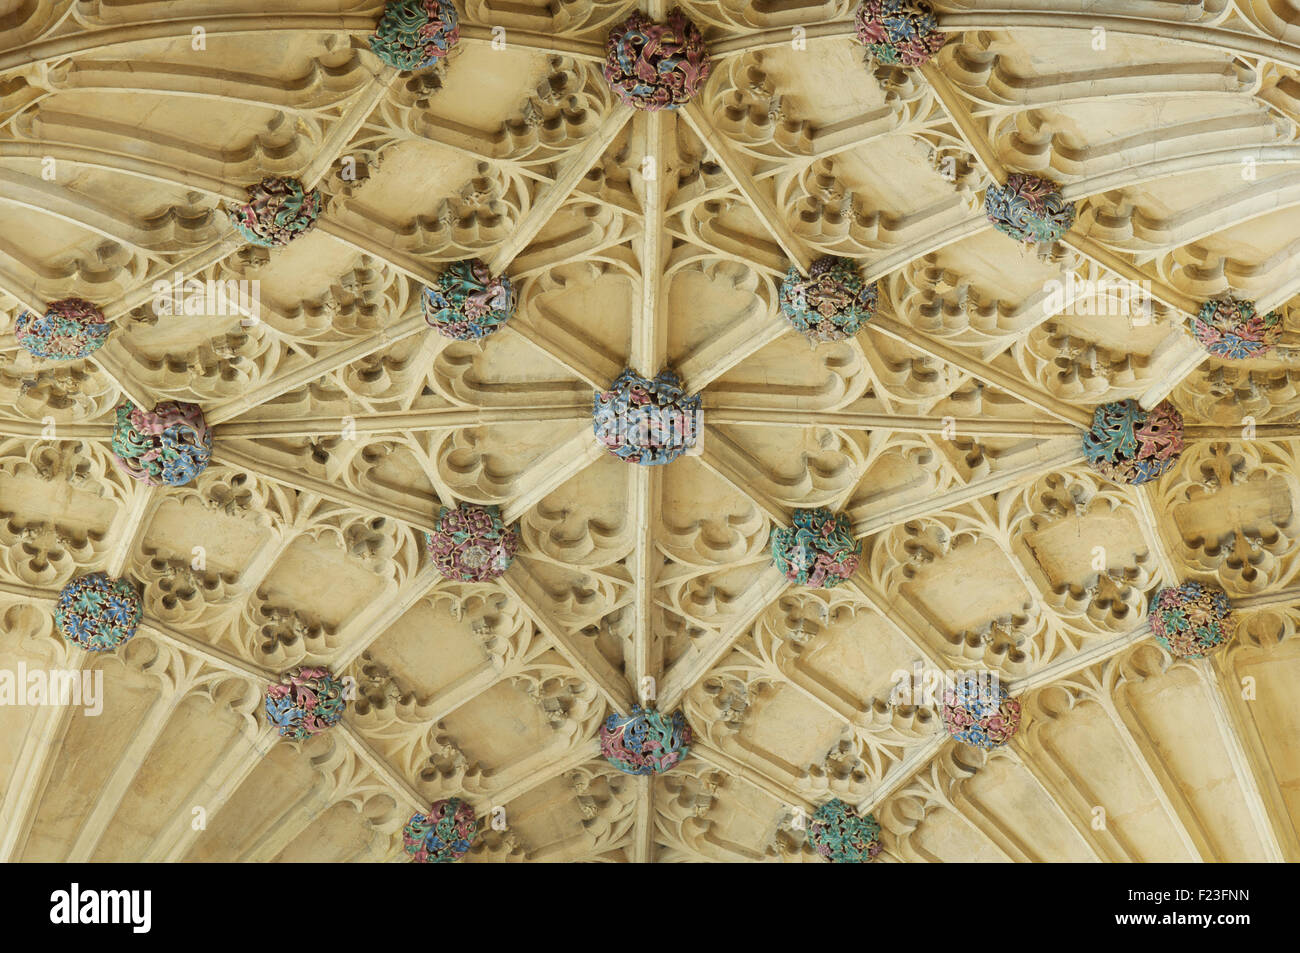 A detail of the colourful bosses of the ornate Gothic fan vaulted ceiling above the organ loft, Sherborne Abbey. - Stock Image